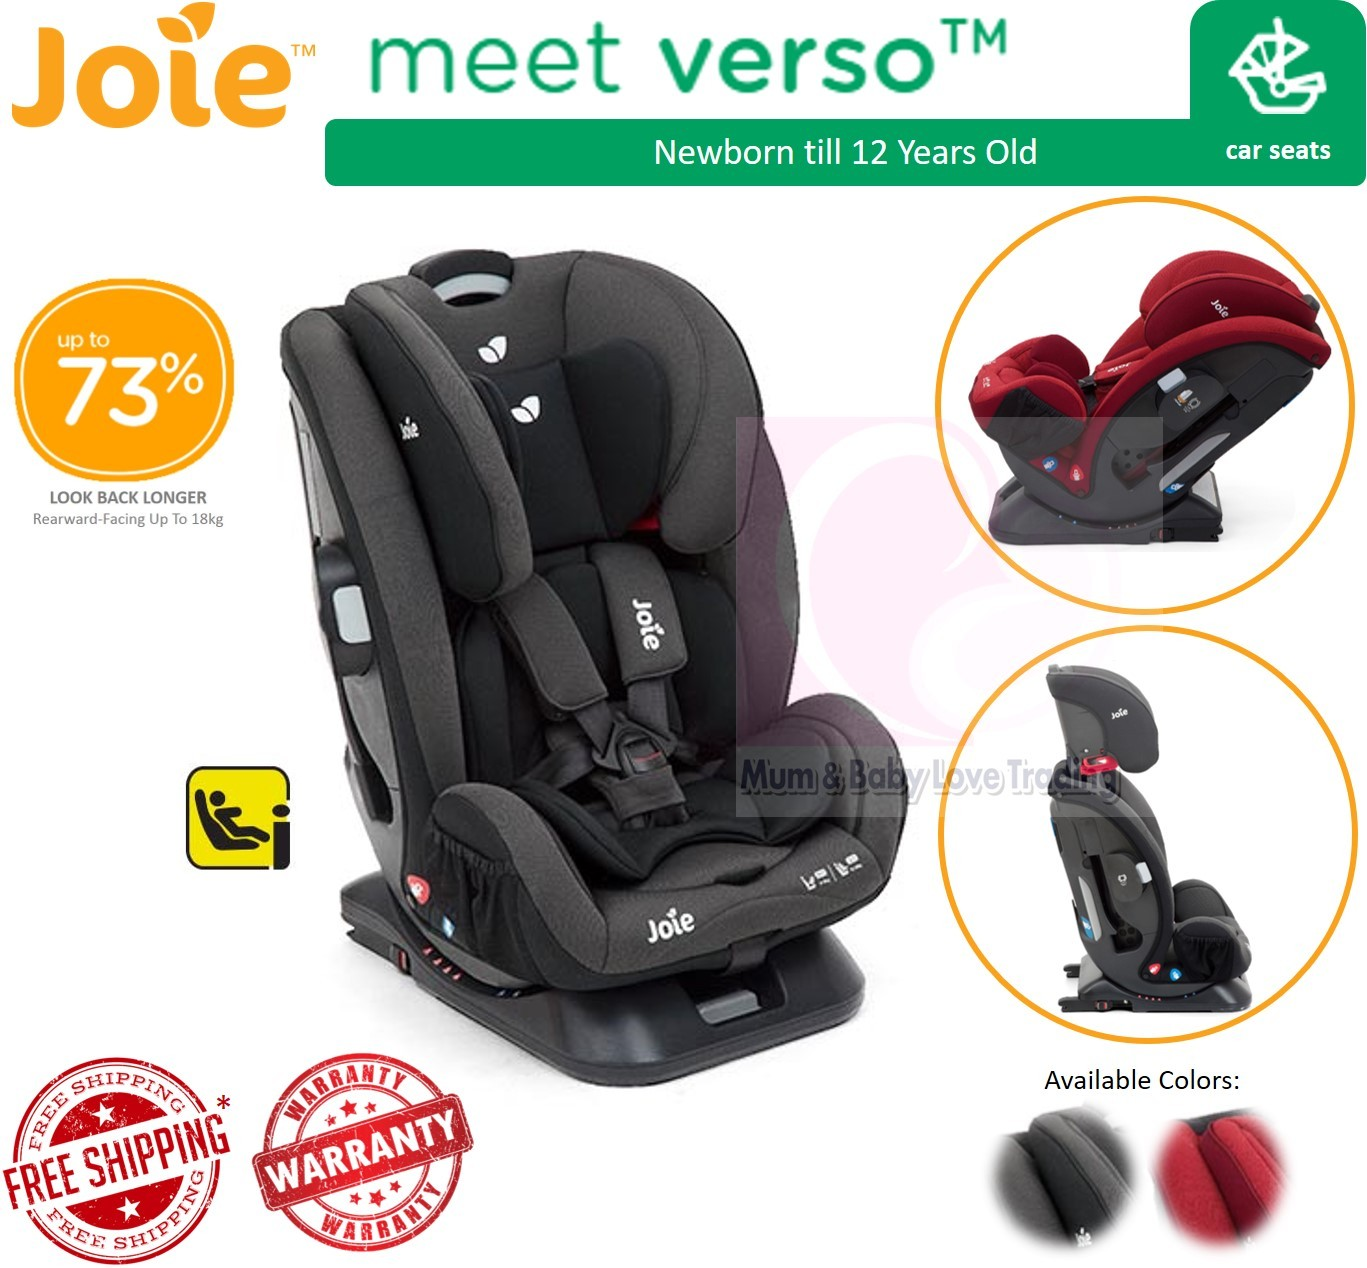 Joie Verso Convertible Isofix Baby Car Seat Newborn Till 36kg Free Shipping Cherry Ember